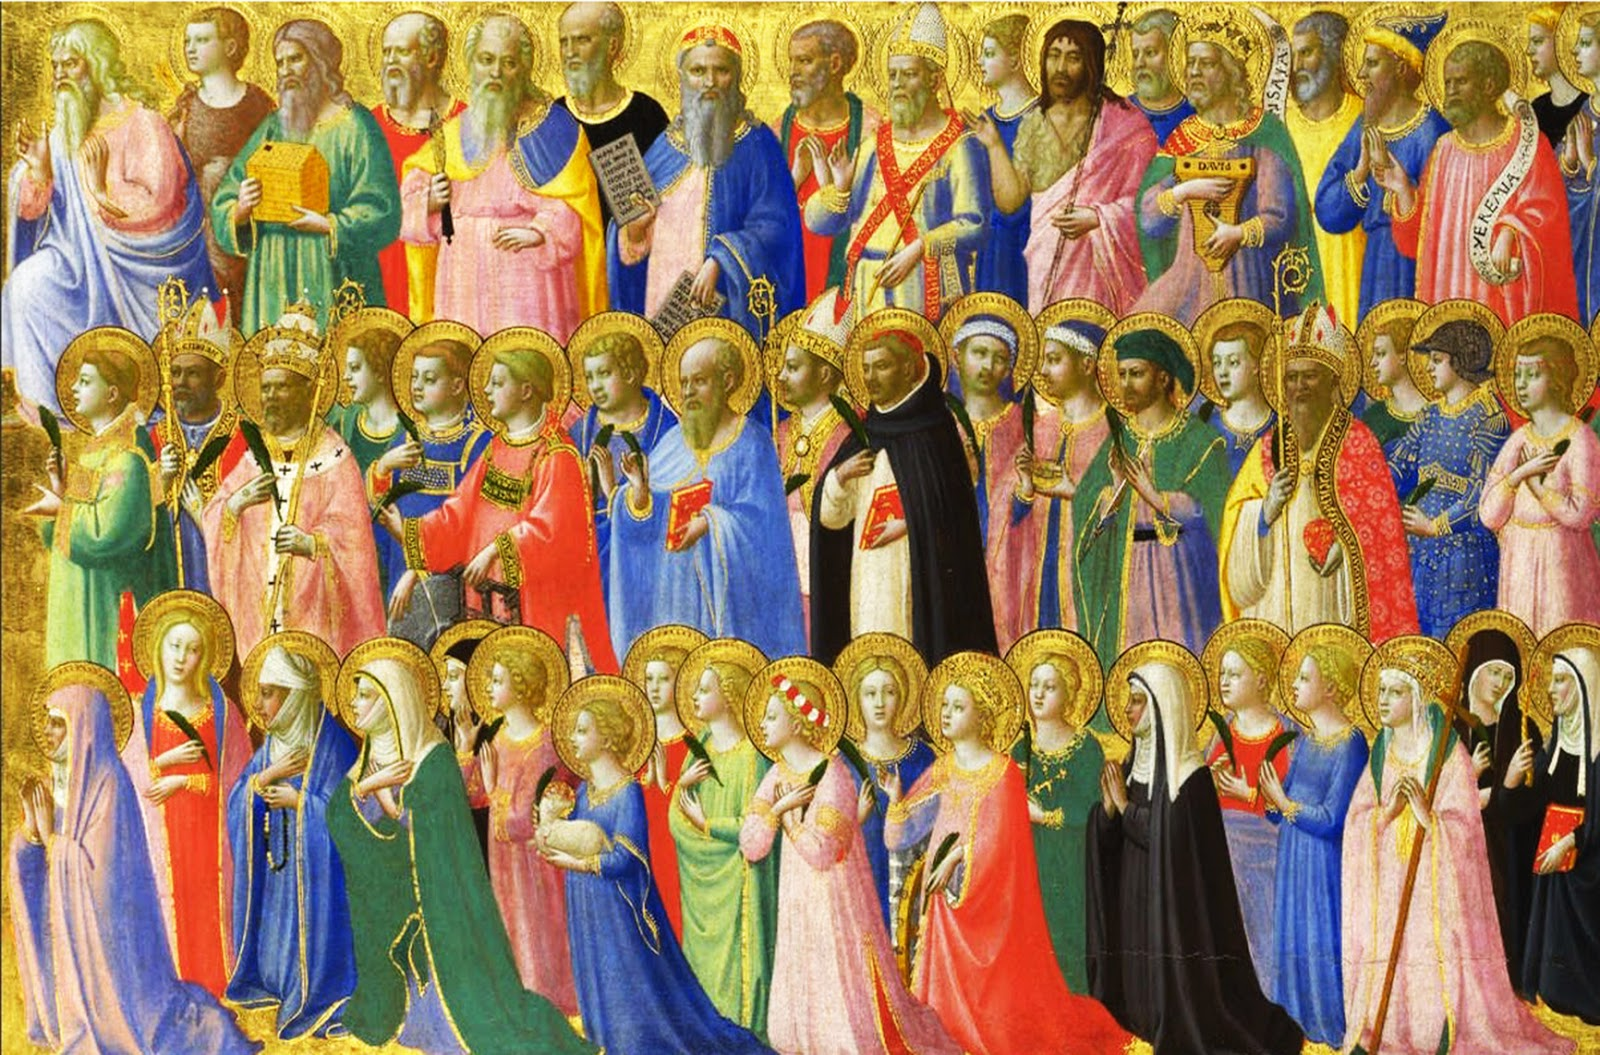 All Saints' Day Masses - Holy Day of Obligation